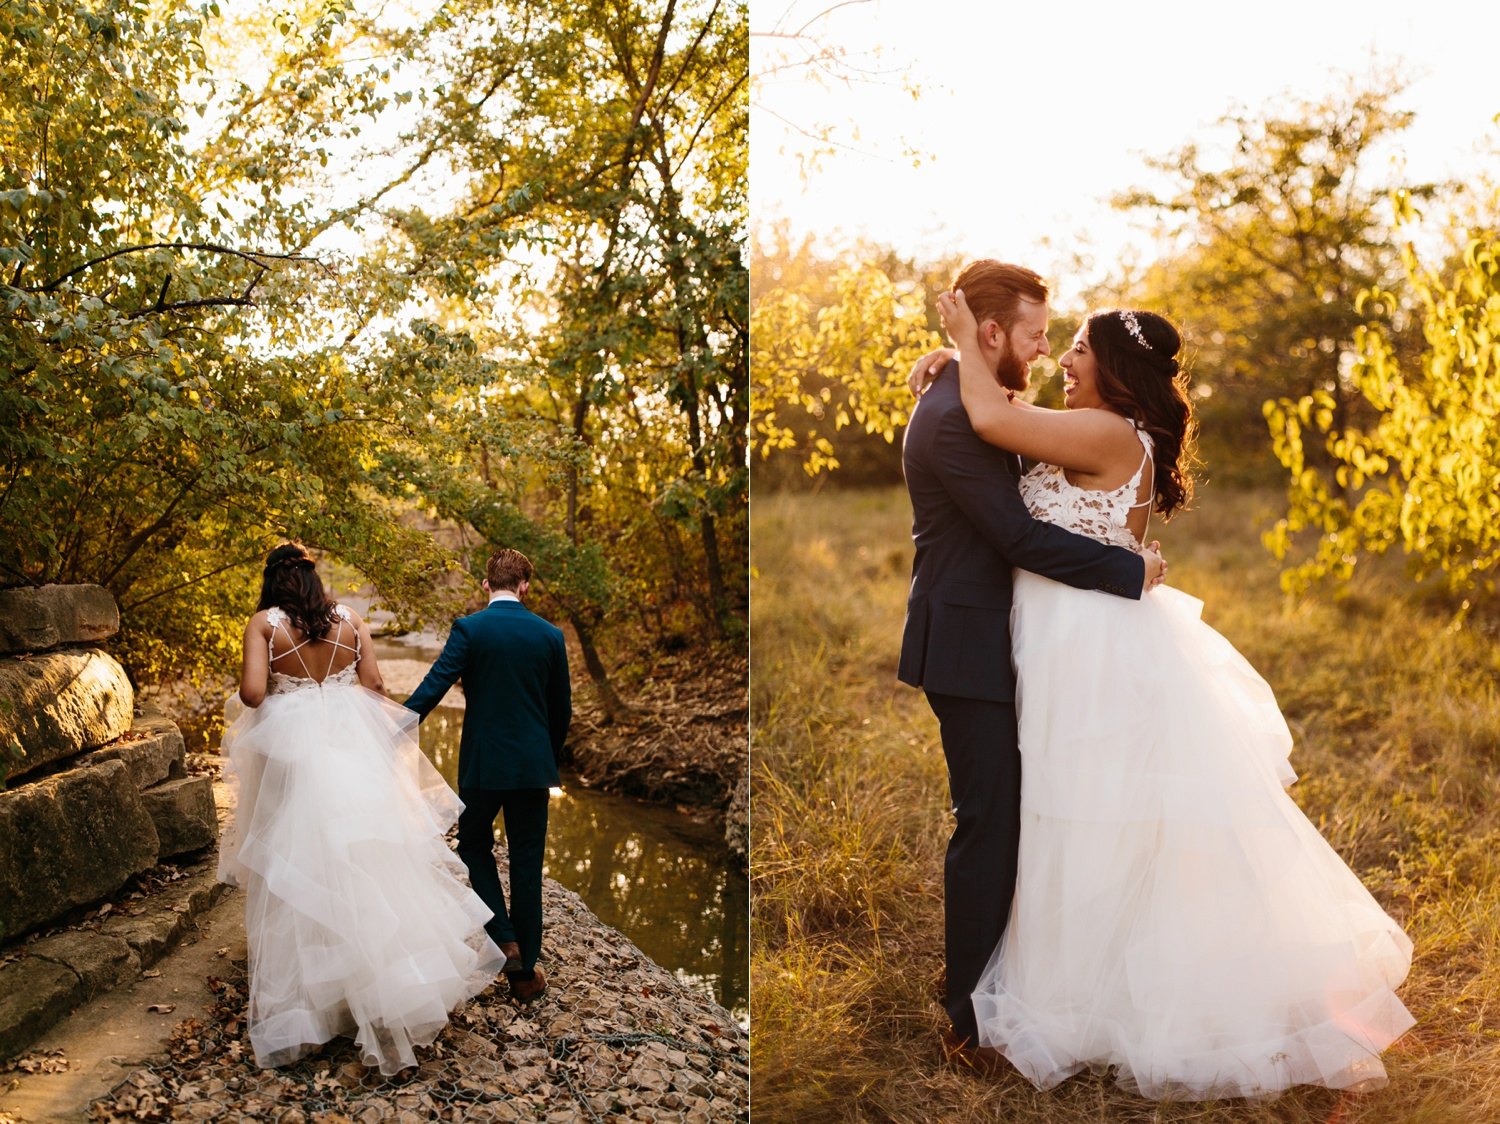 Grant + Lysette | a vibrant, deep burgundy and navy, and mixed metals wedding at Hidden Pines Chapel by North Texas Wedding Photographer Rachel Meagan Photography 216